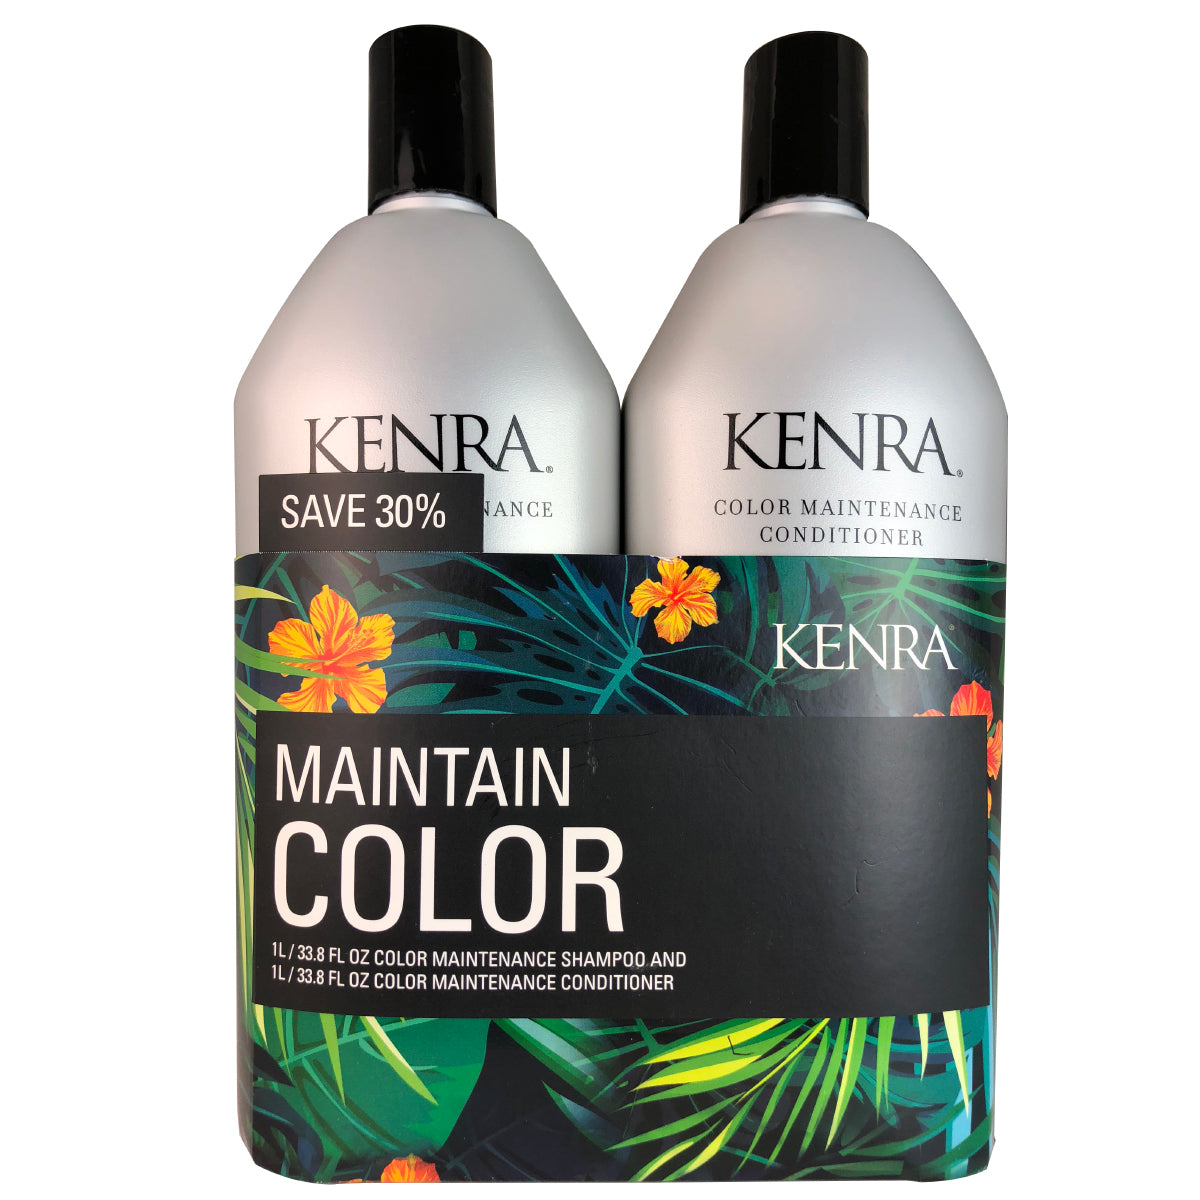 KENRA Color Locking Maintenance Shampoo & Conditioner Liter Duo 33.8 oz each